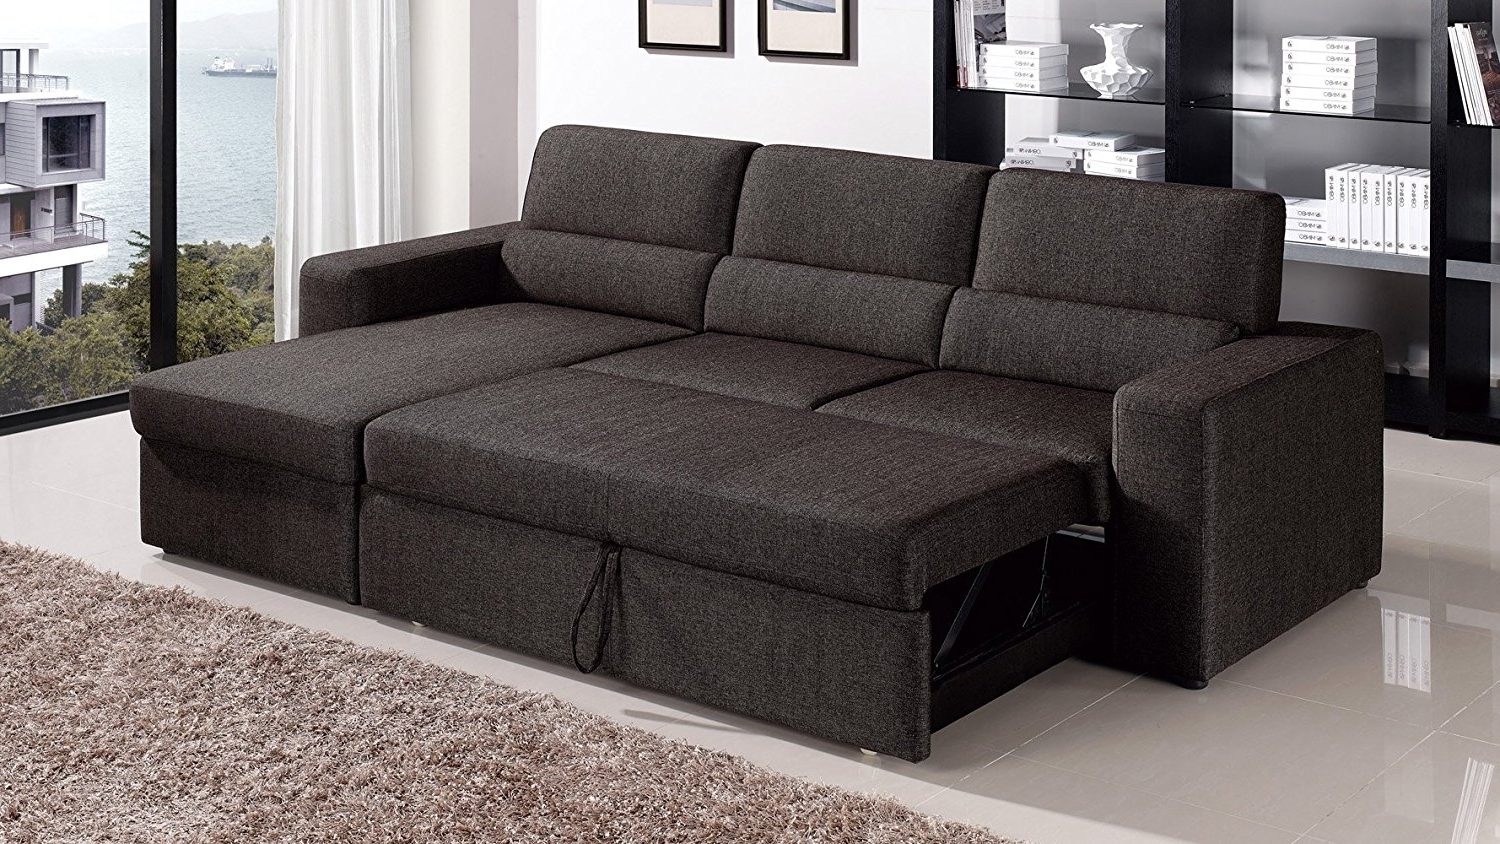 Most Popular Amazon: Black/brown Clubber Sleeper Sectional Sofa – Right Throughout Chaise Sofa Sleepers (View 8 of 15)